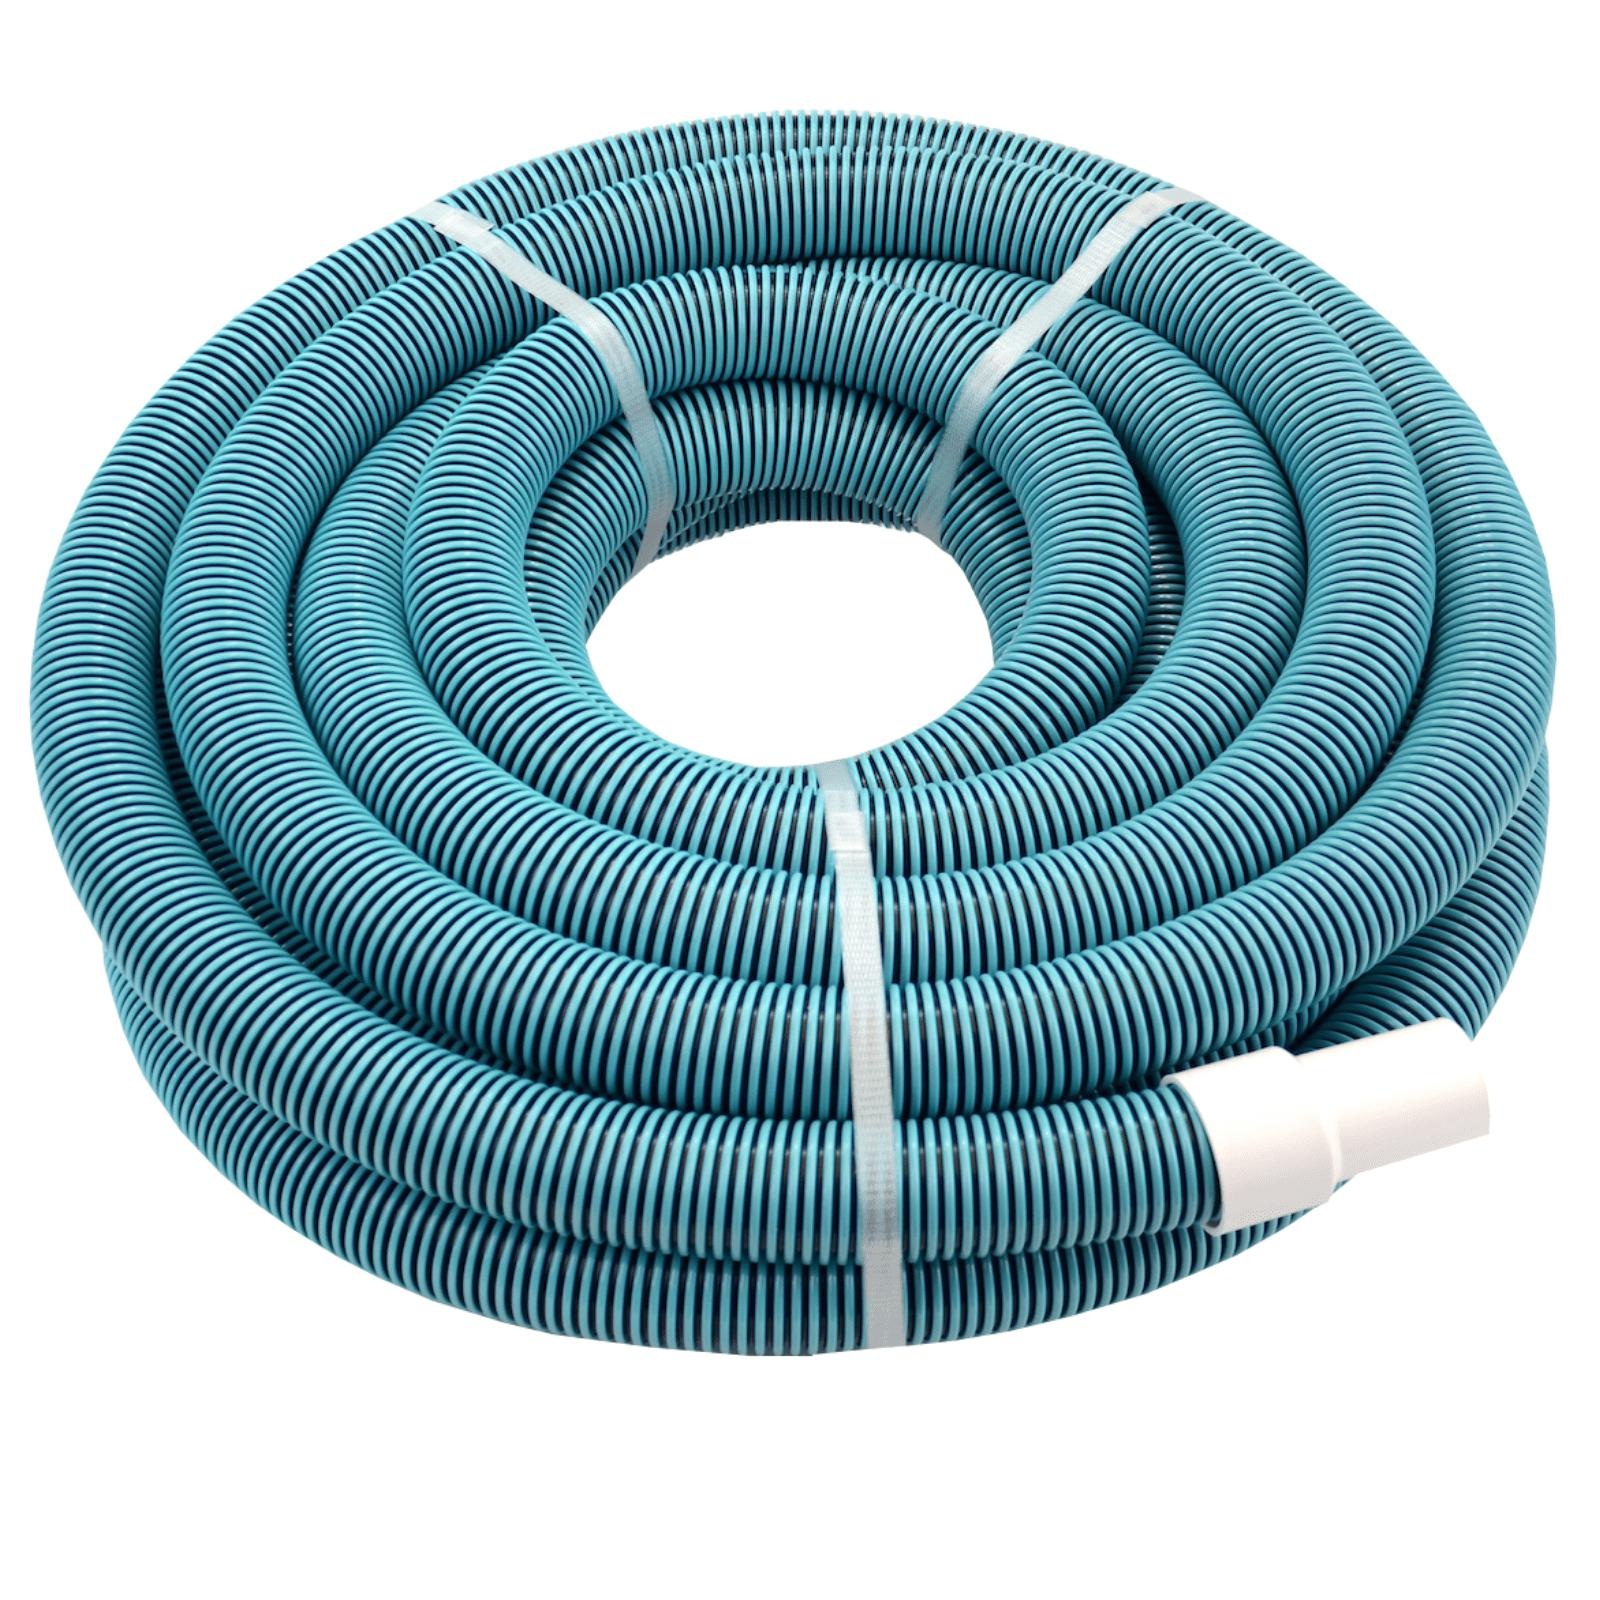 Water TechniX Pool Hose 9m 30ft-Hoses-Mr Pool Man